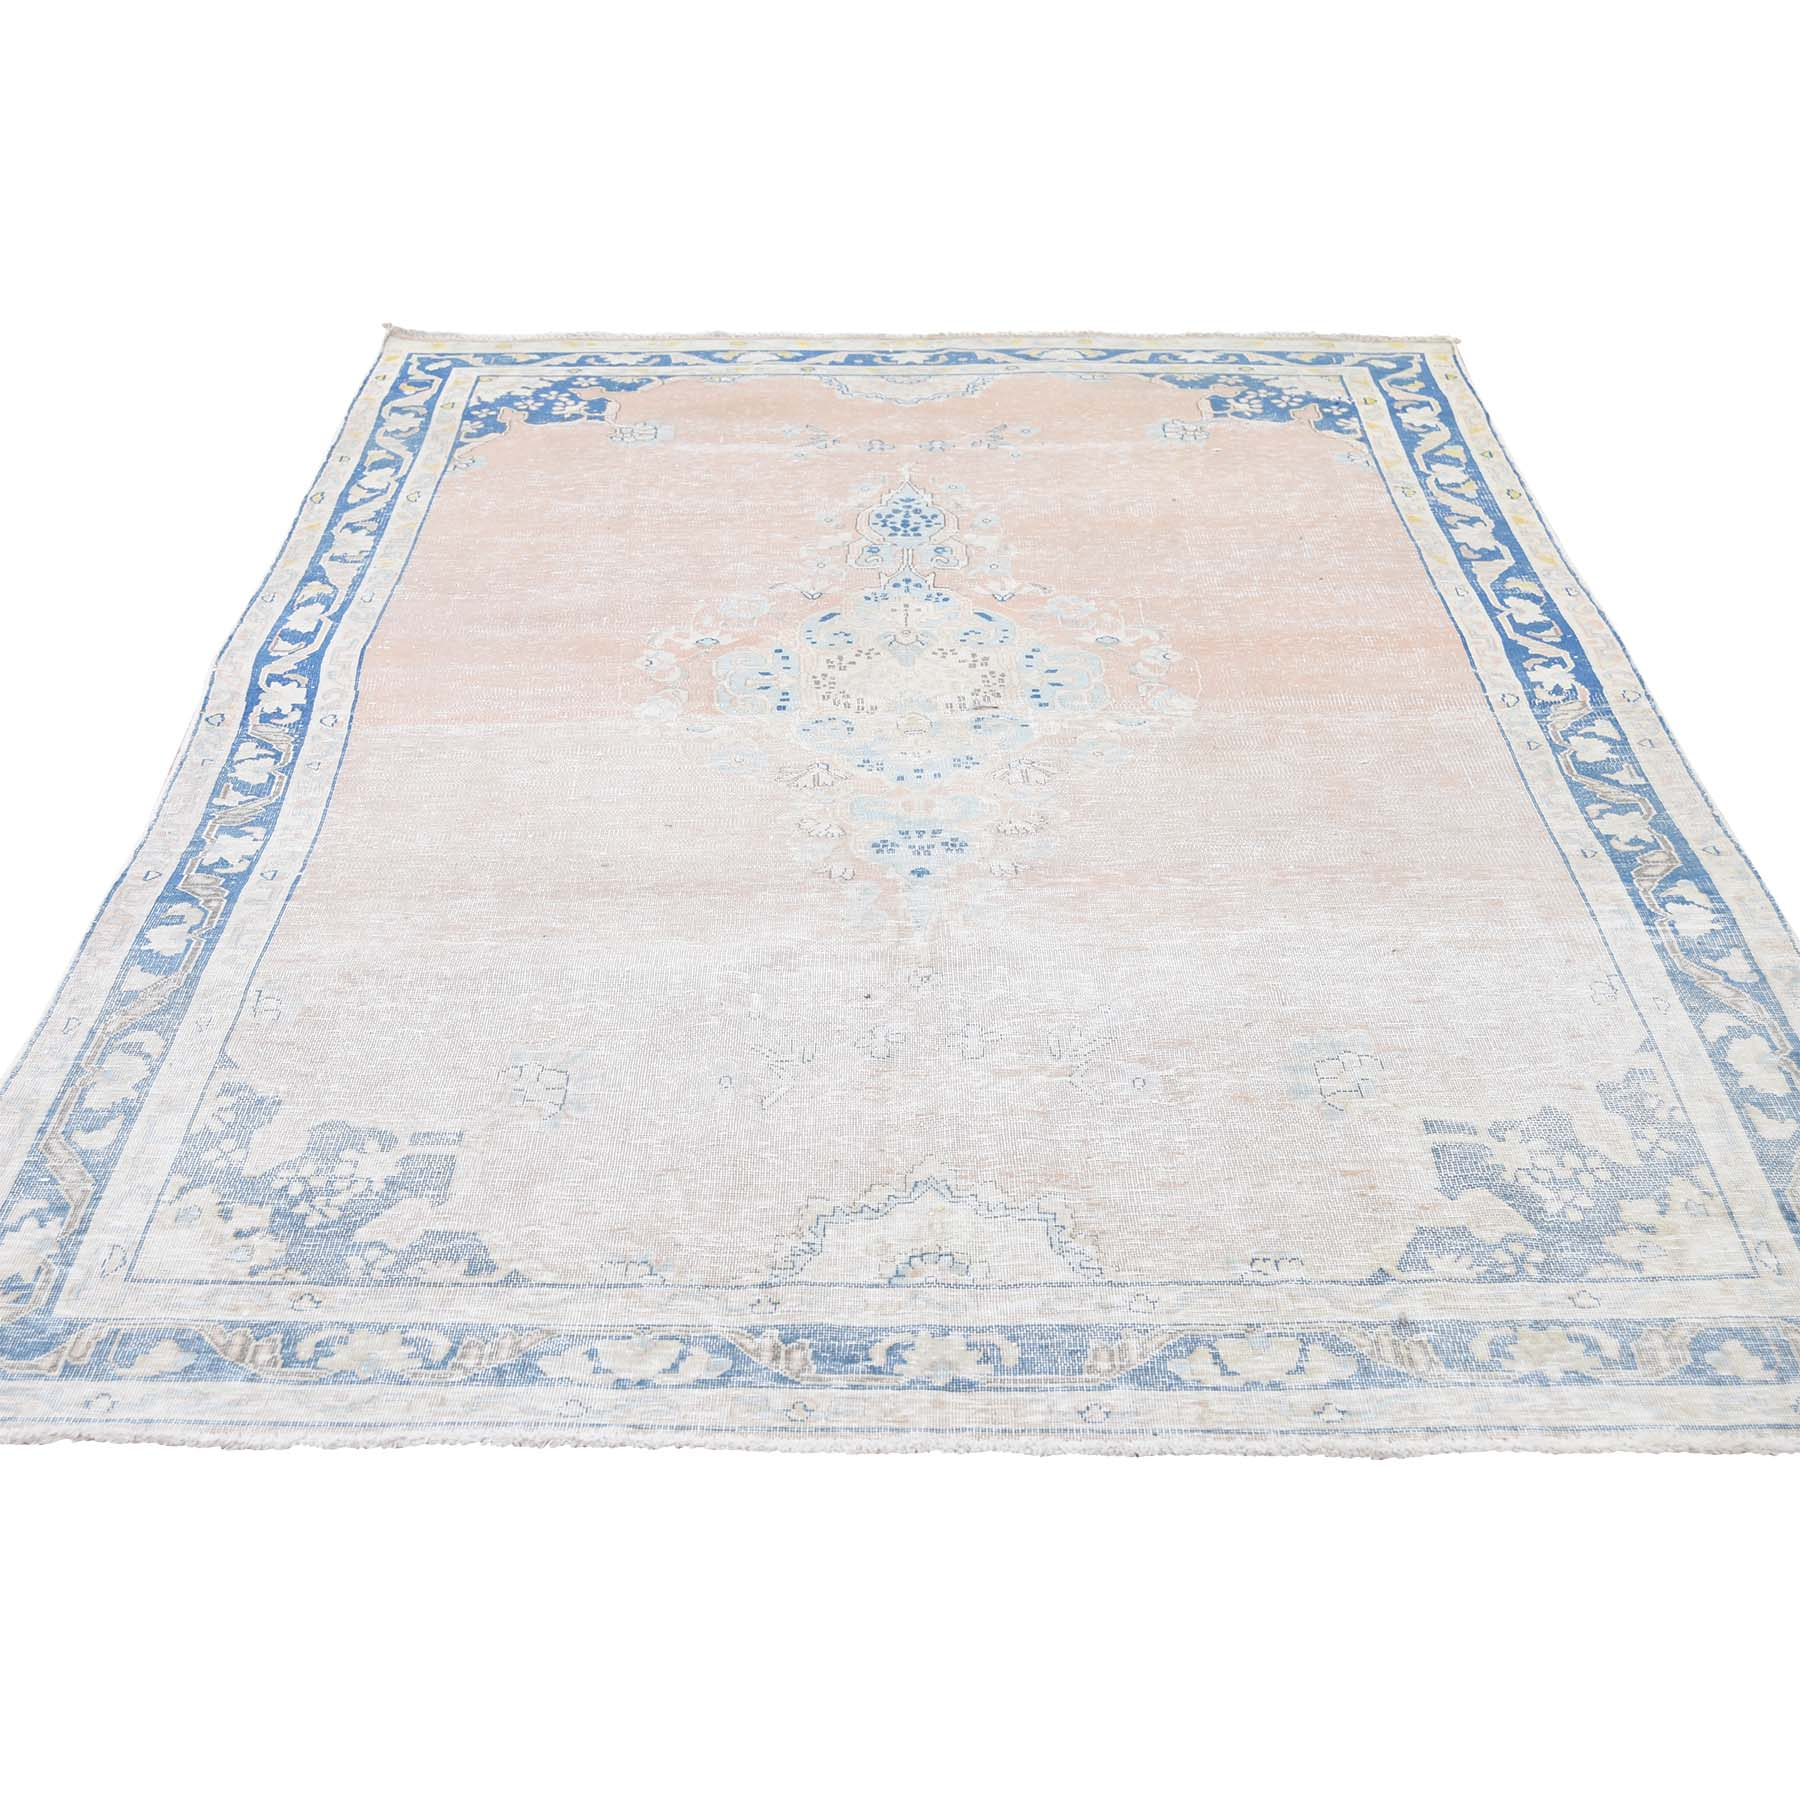 "4'7""X7'6"" Hand-Knotted White Wash Vintage Kerman Highlight Of Blue Worn Pile Oriental Rug moadd70e"